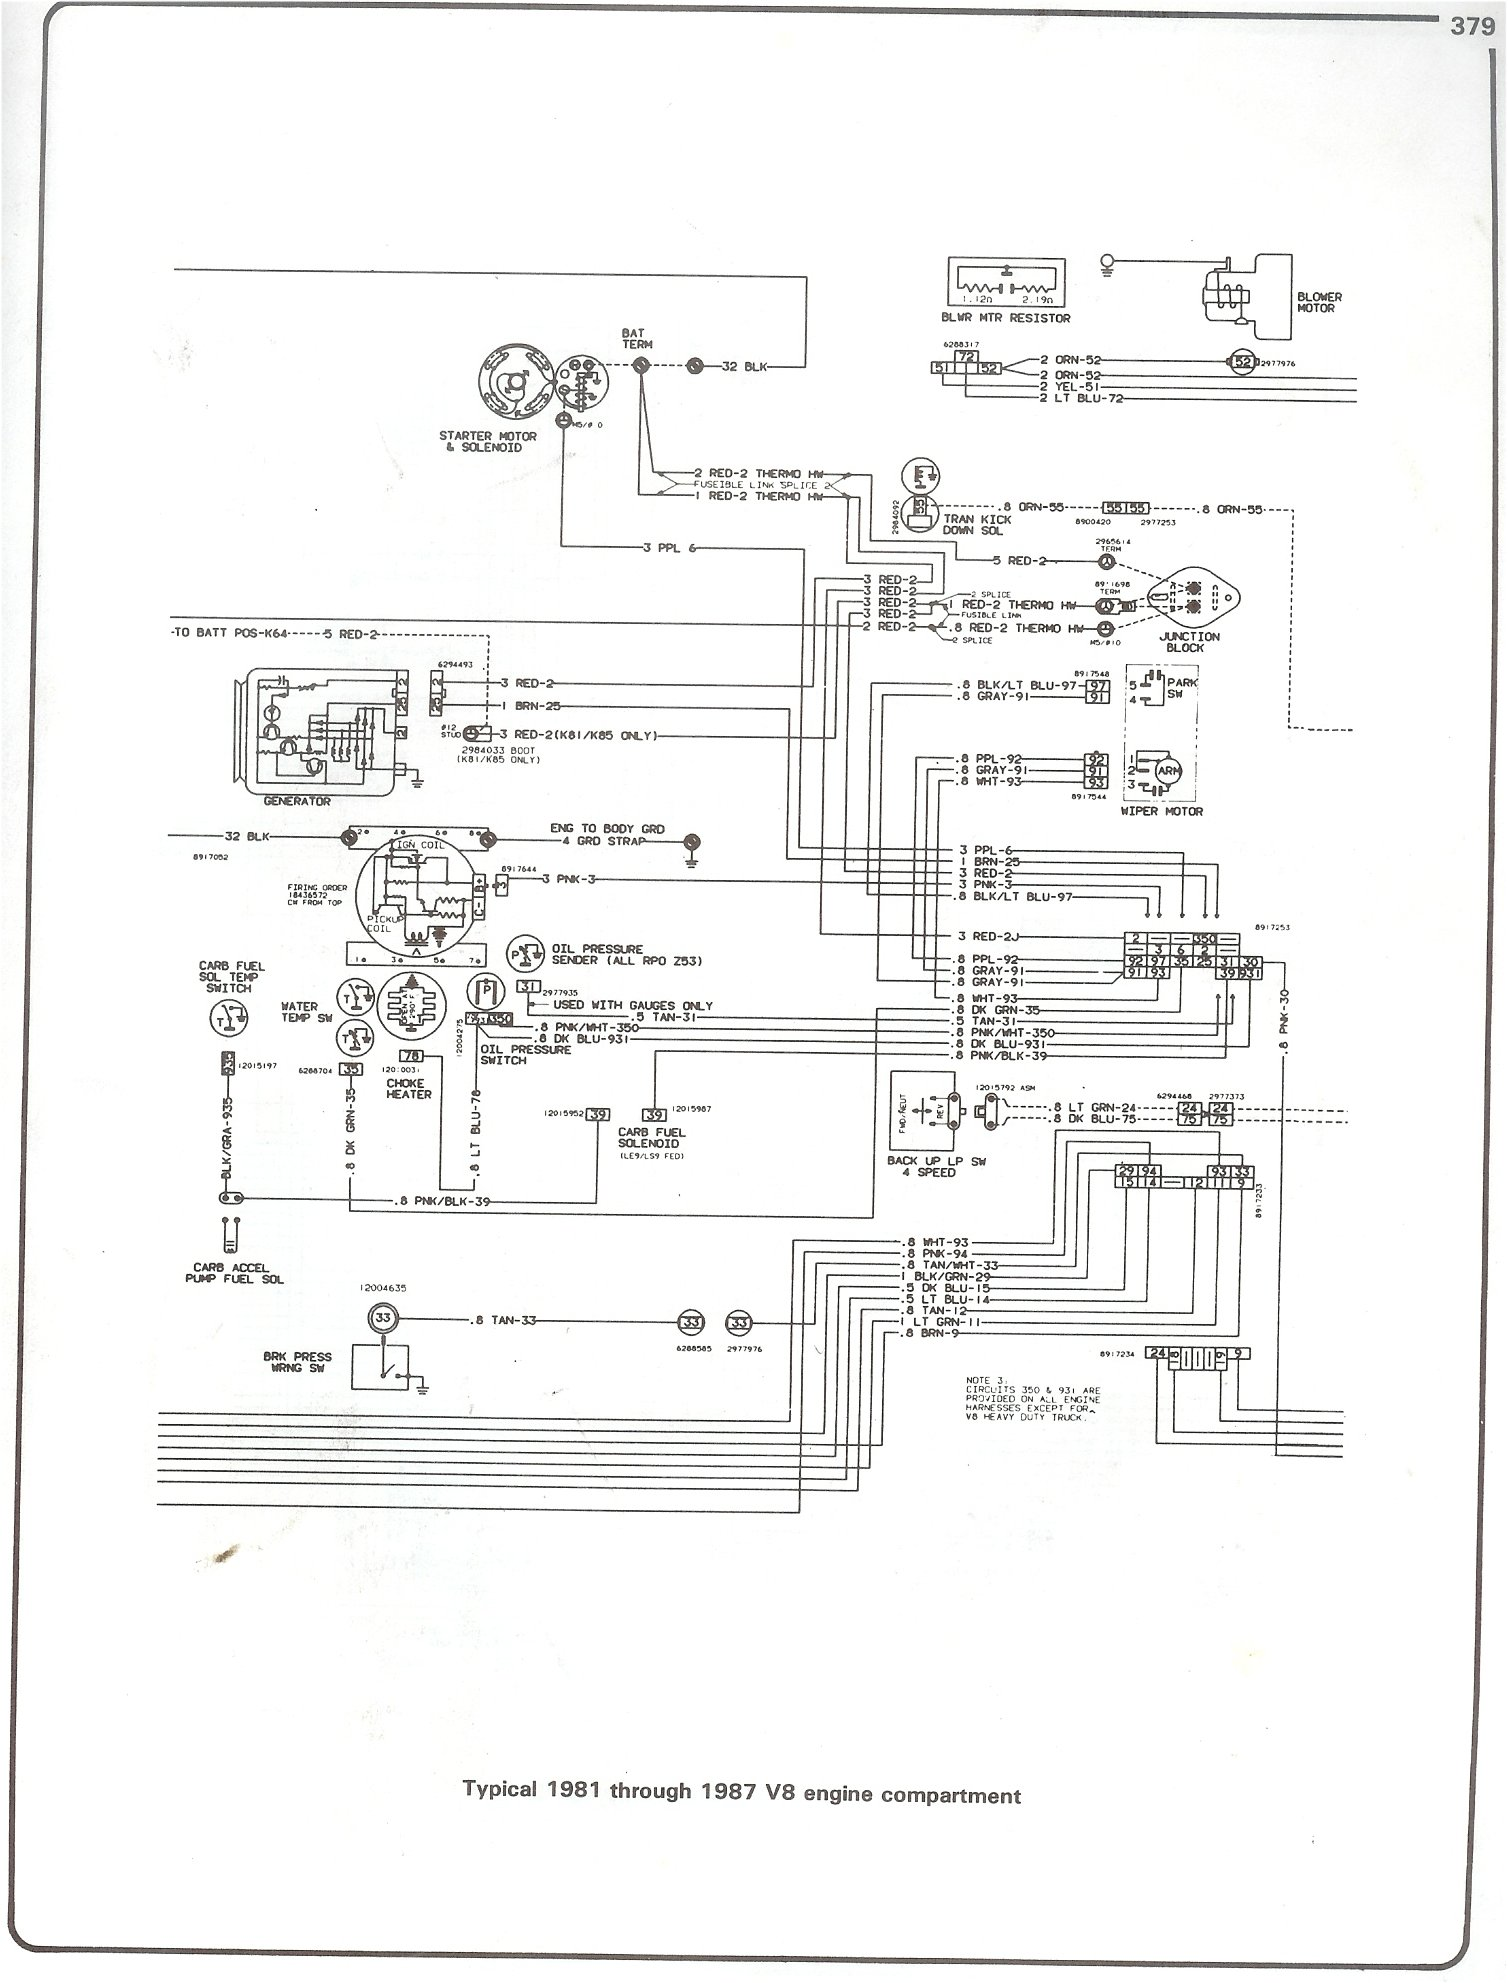 81 87_V8_engine chevy wiring diagrams chevy radio wiring \u2022 wiring diagrams j 1987 Celebrity at soozxer.org